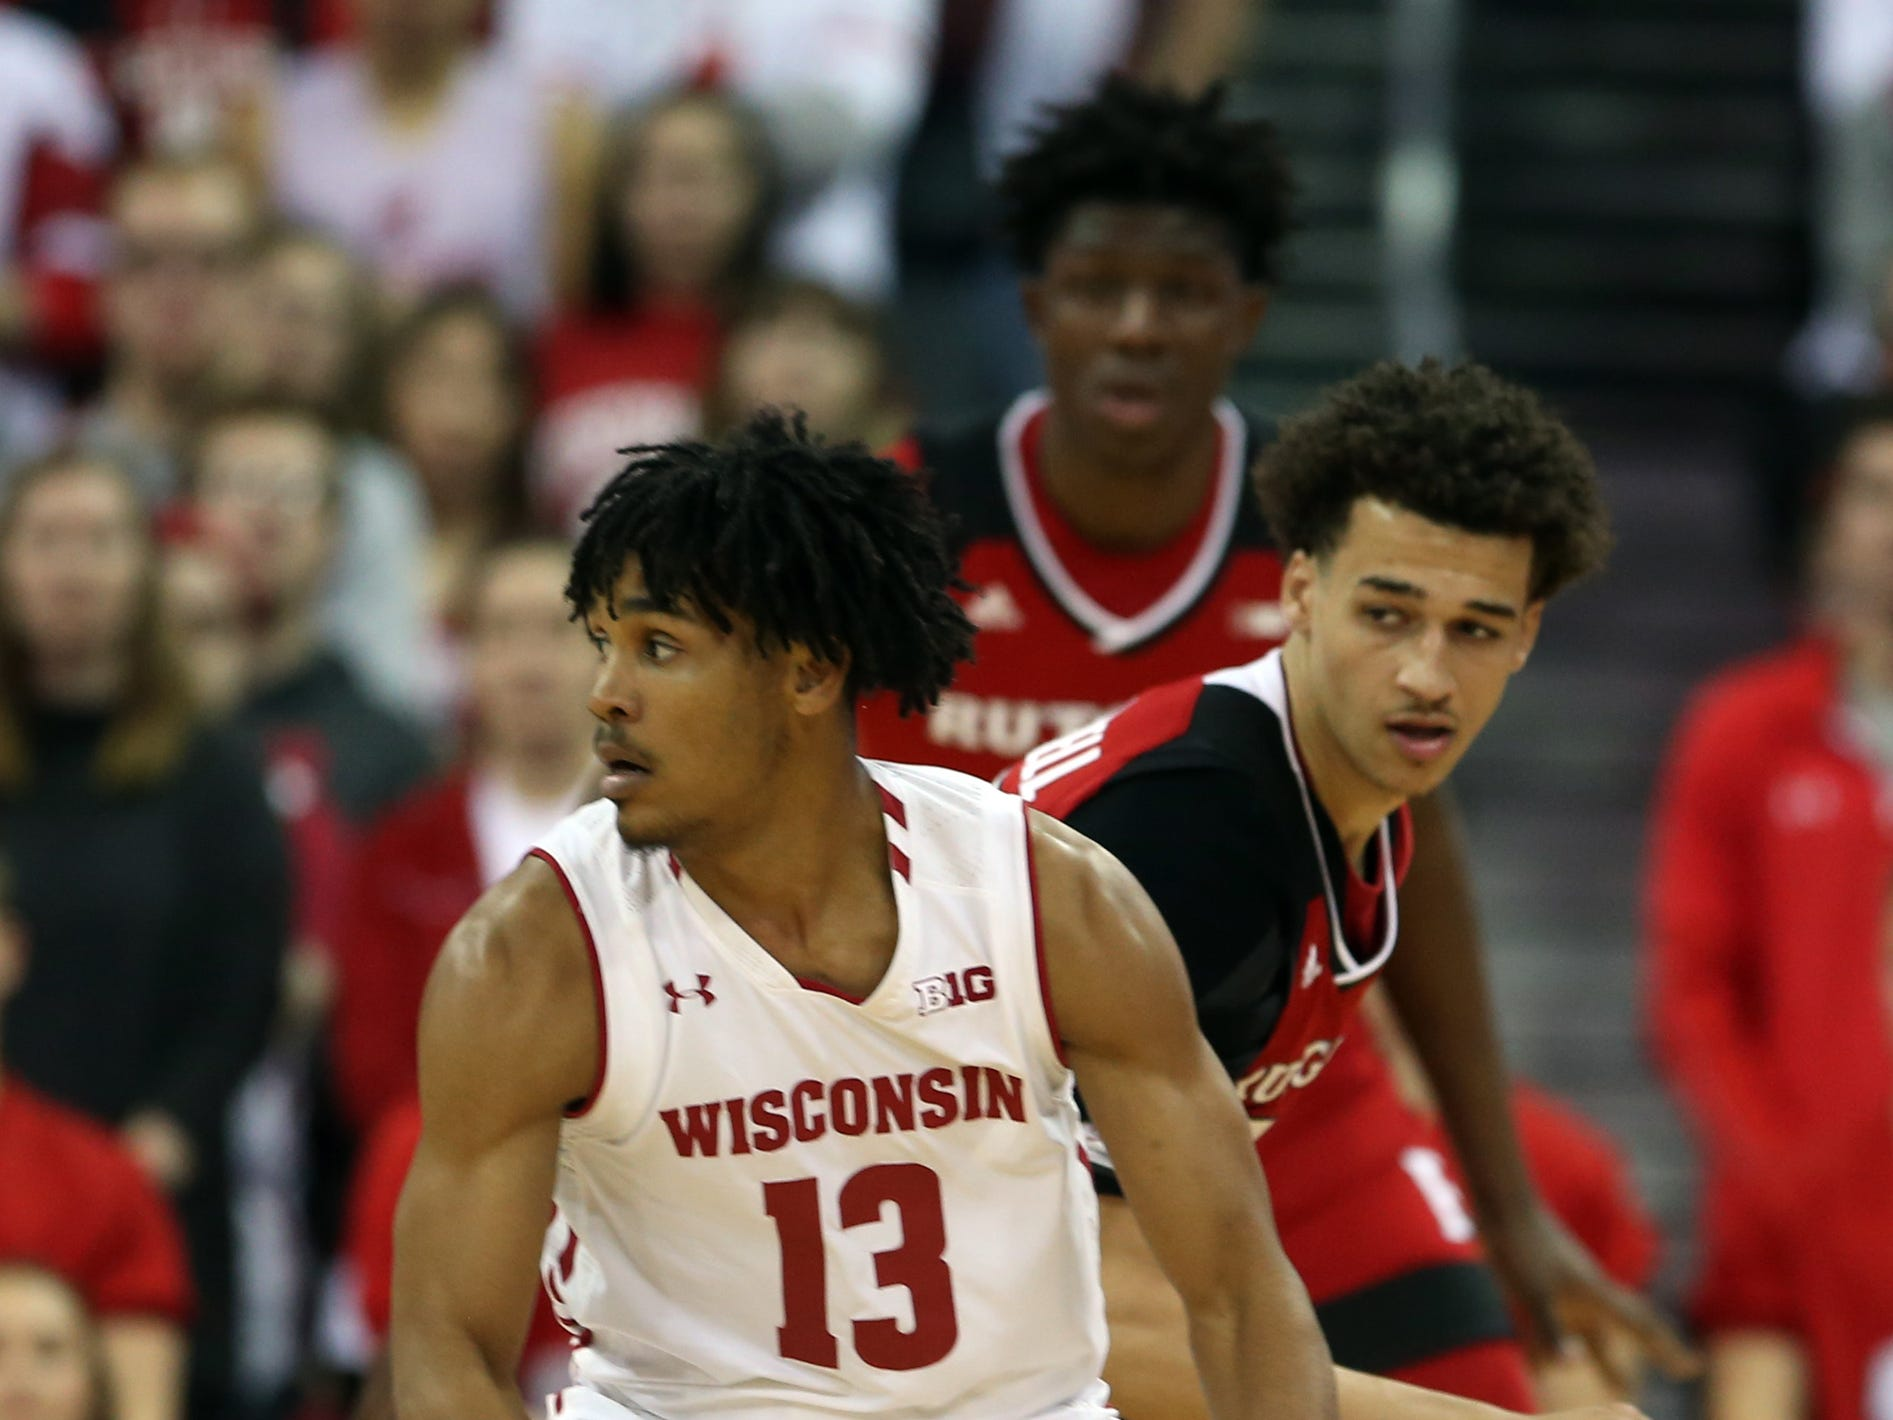 UW freshman guard Tai Strickland works the ball against Caleb McConnell of Rutgers during the first half Monday night.